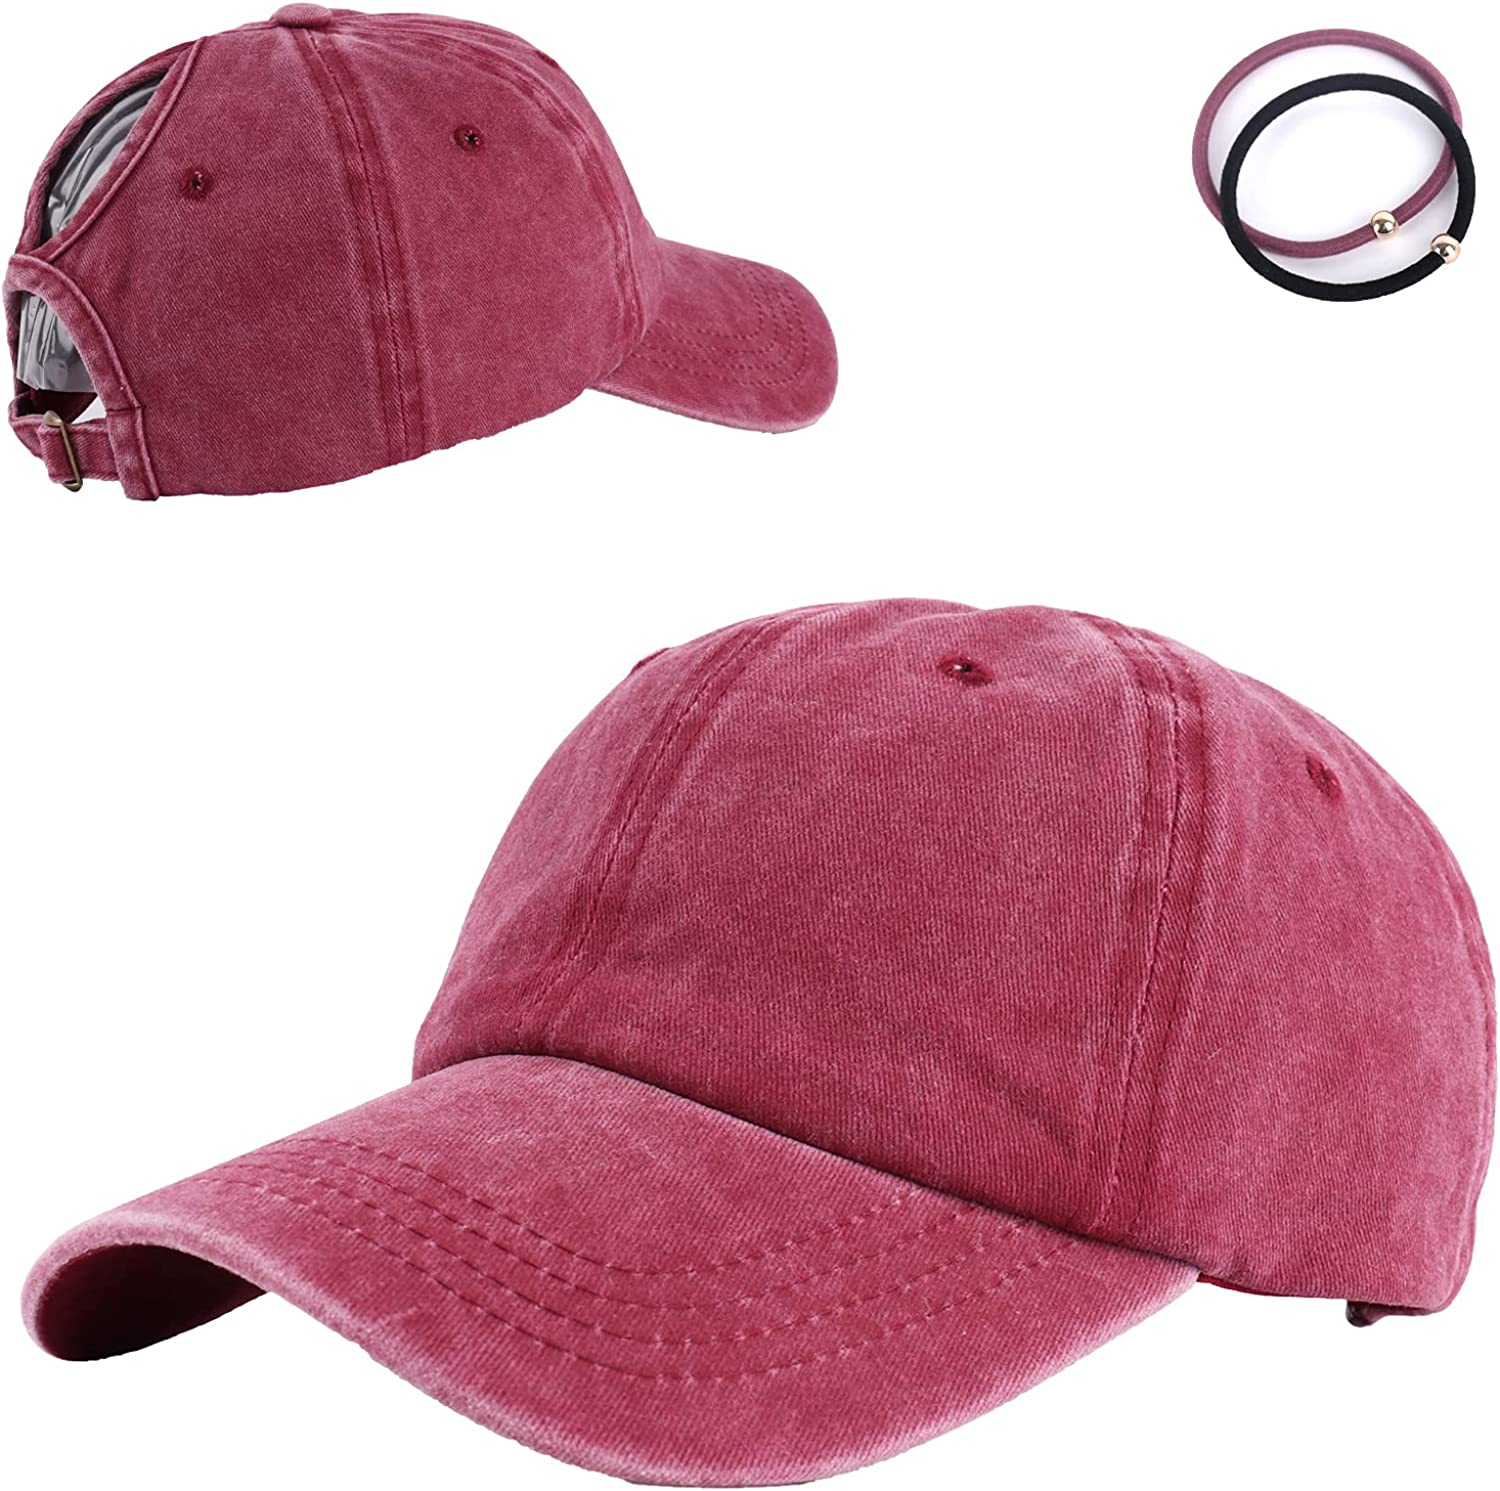 Mikaboo Women Washed Cotton High Ponytail Baseball Cap,Adjustable Sunhat Trucker Caps Dad Hats